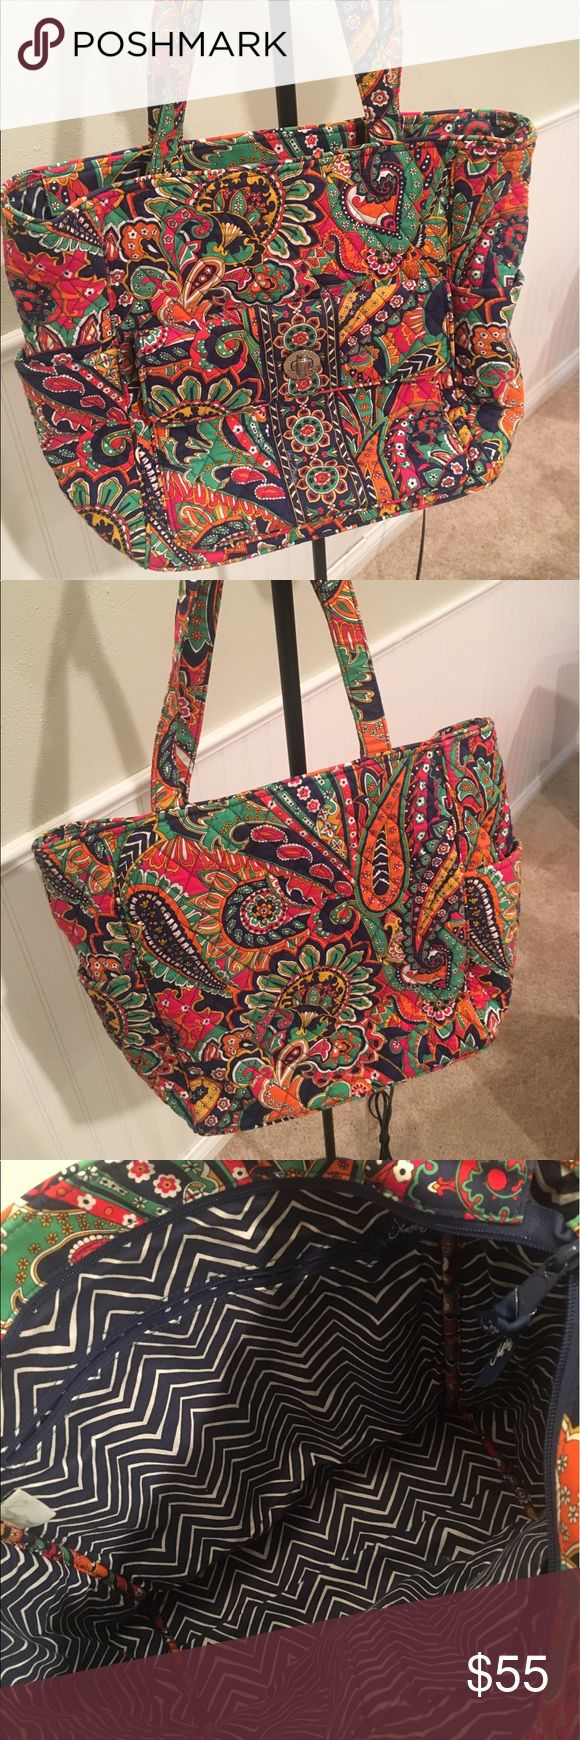 Vera Bradley Tablet Tote in Venetian Paisley This baby has loyally carried my Chromebook, notebooks, other school supplies and lunch in college! Great condition, complete with side pockets for your water bottle, or extra can(s) of Diet Coke! Vera Bradley Bags Totes